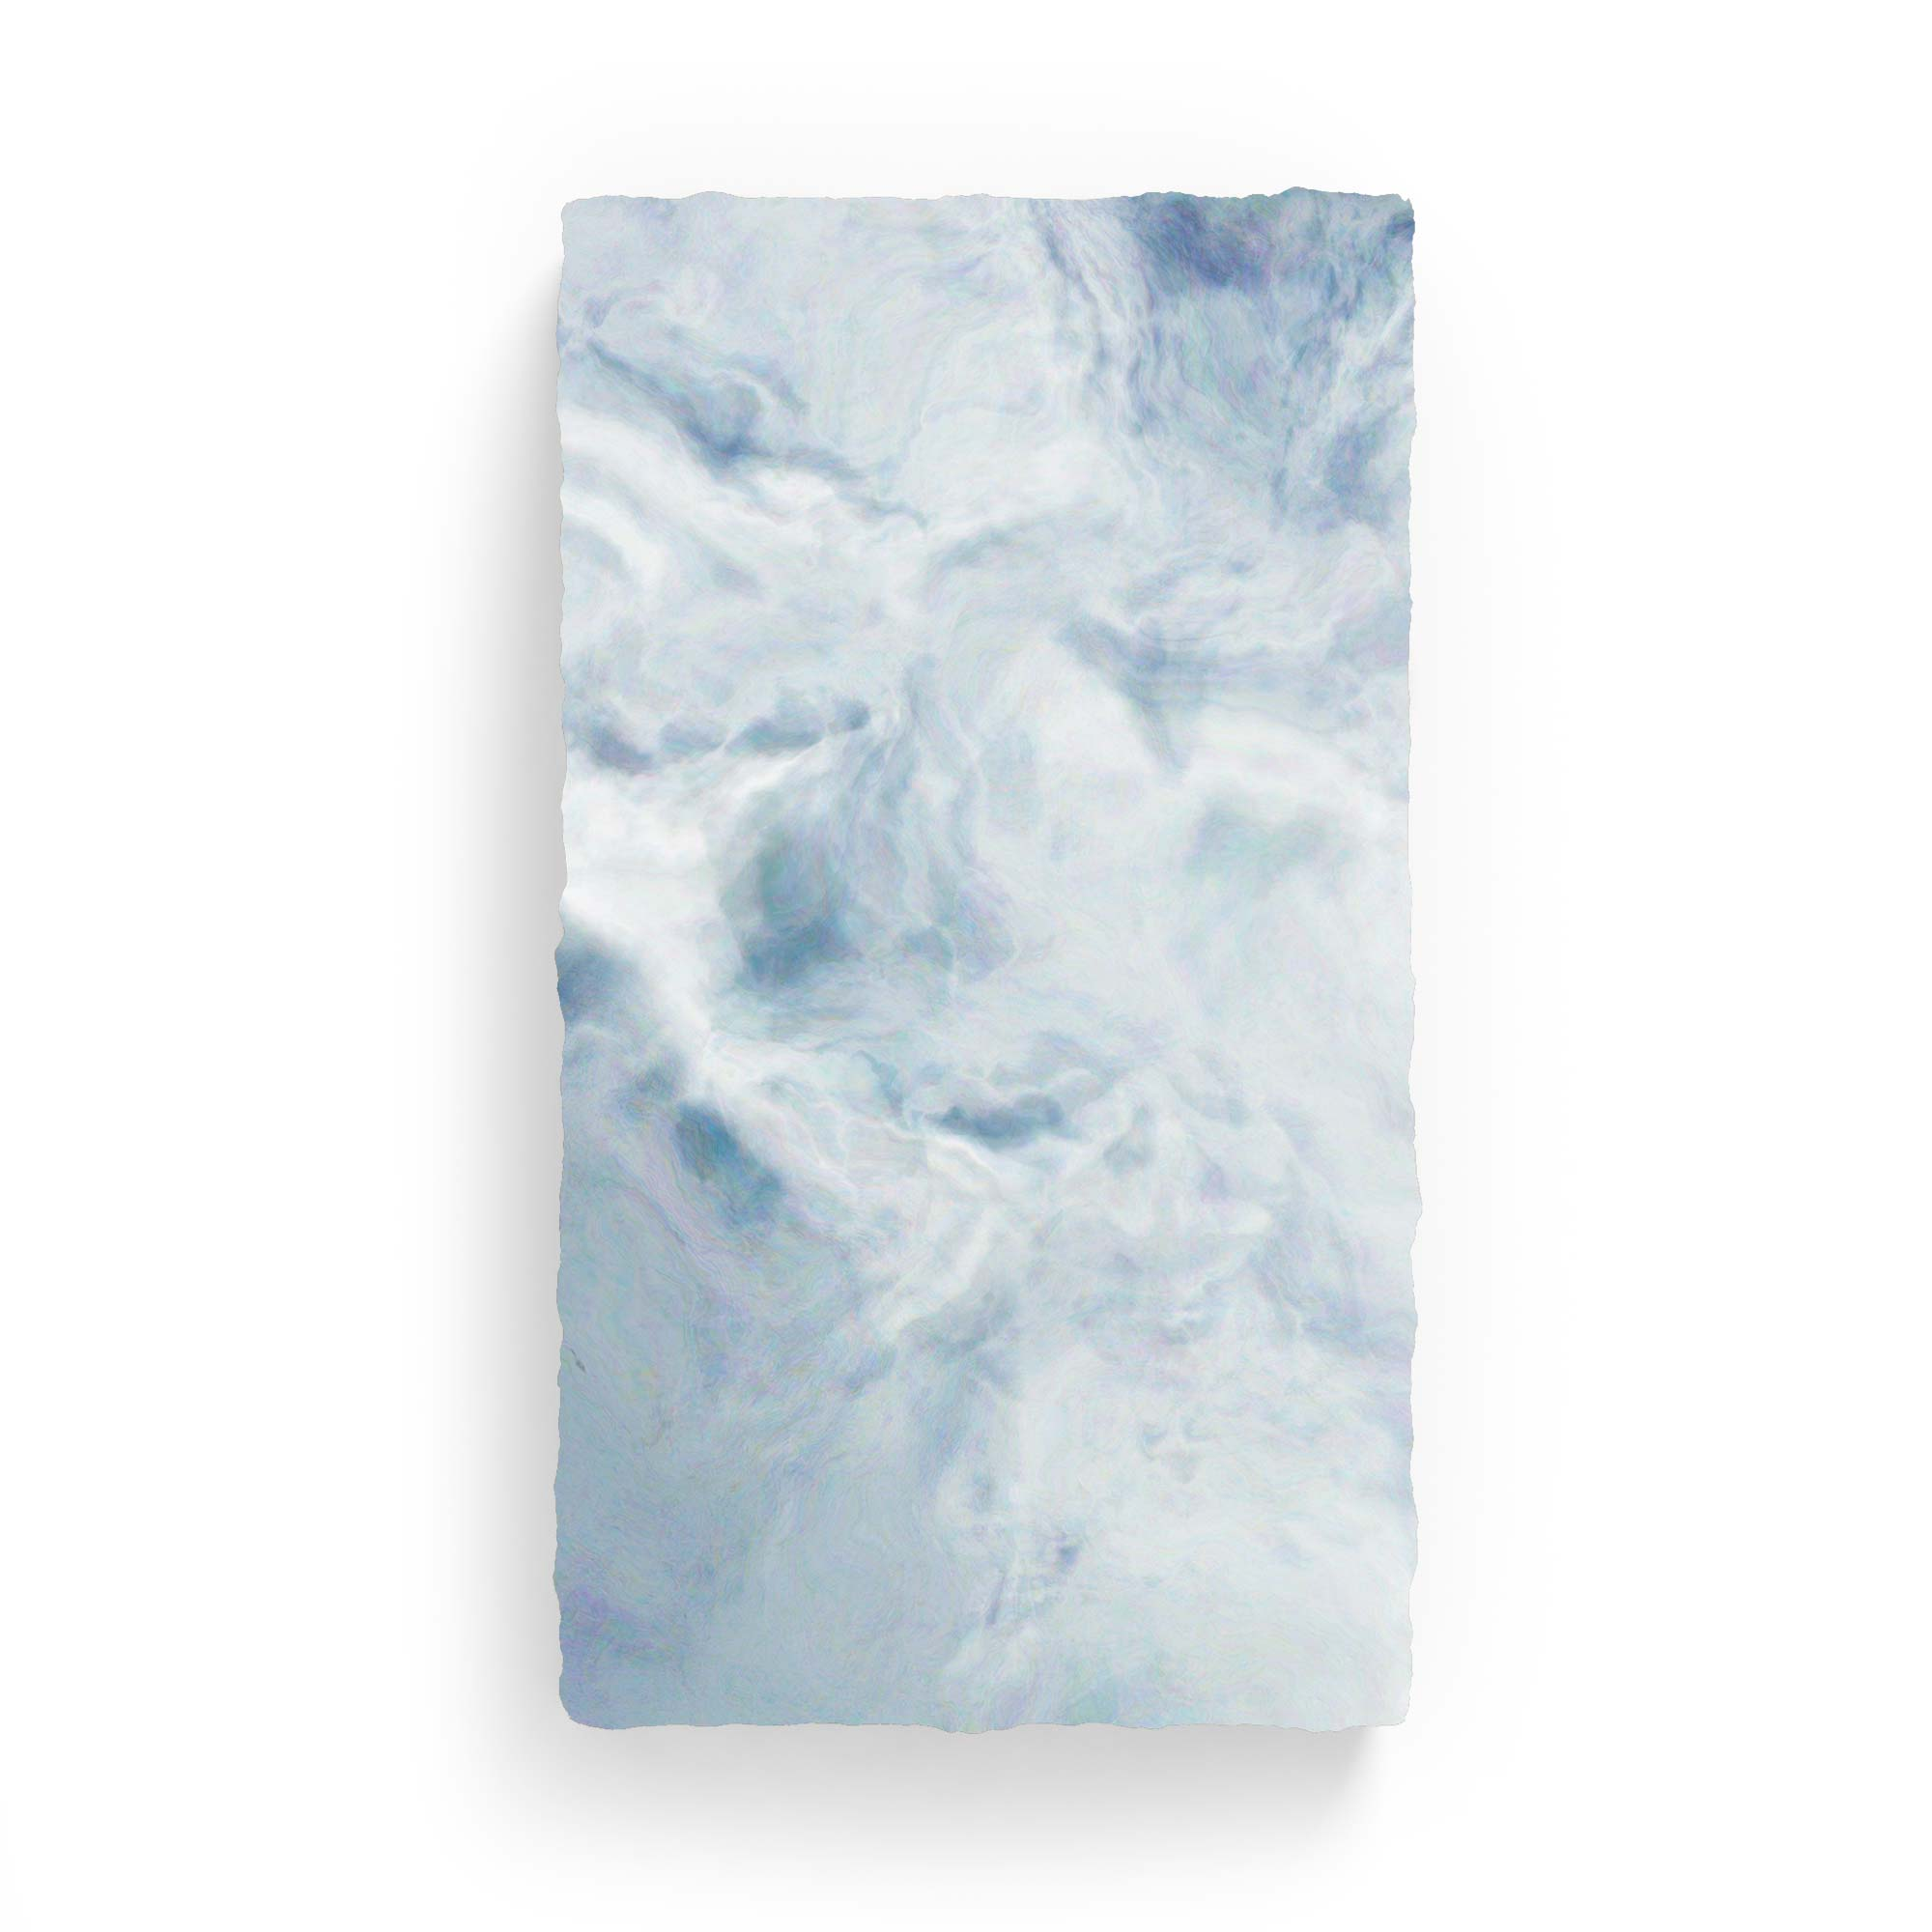 Early Grey Marble Soap Bar